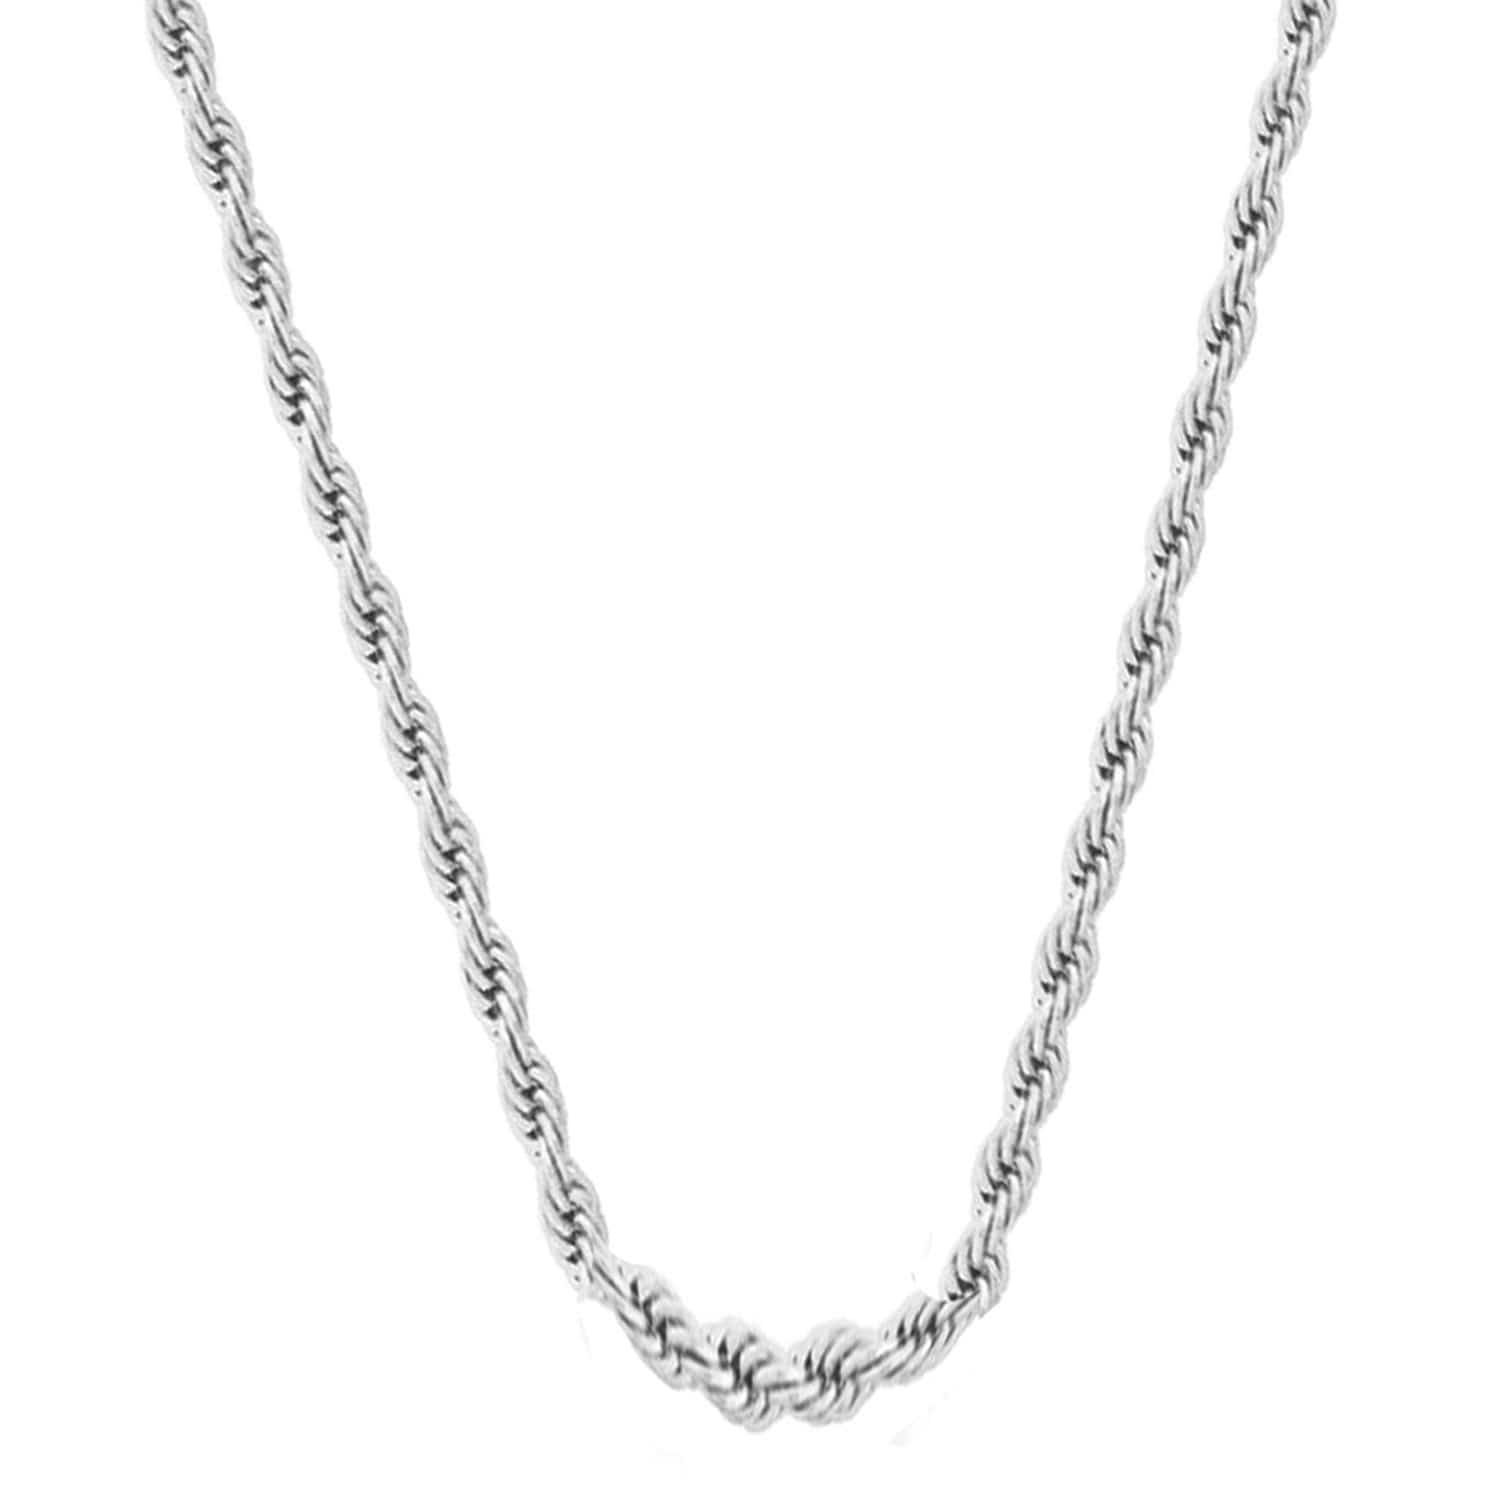 Silver Stainless Steel Polished 3.5 mm French Rope Chain Chains